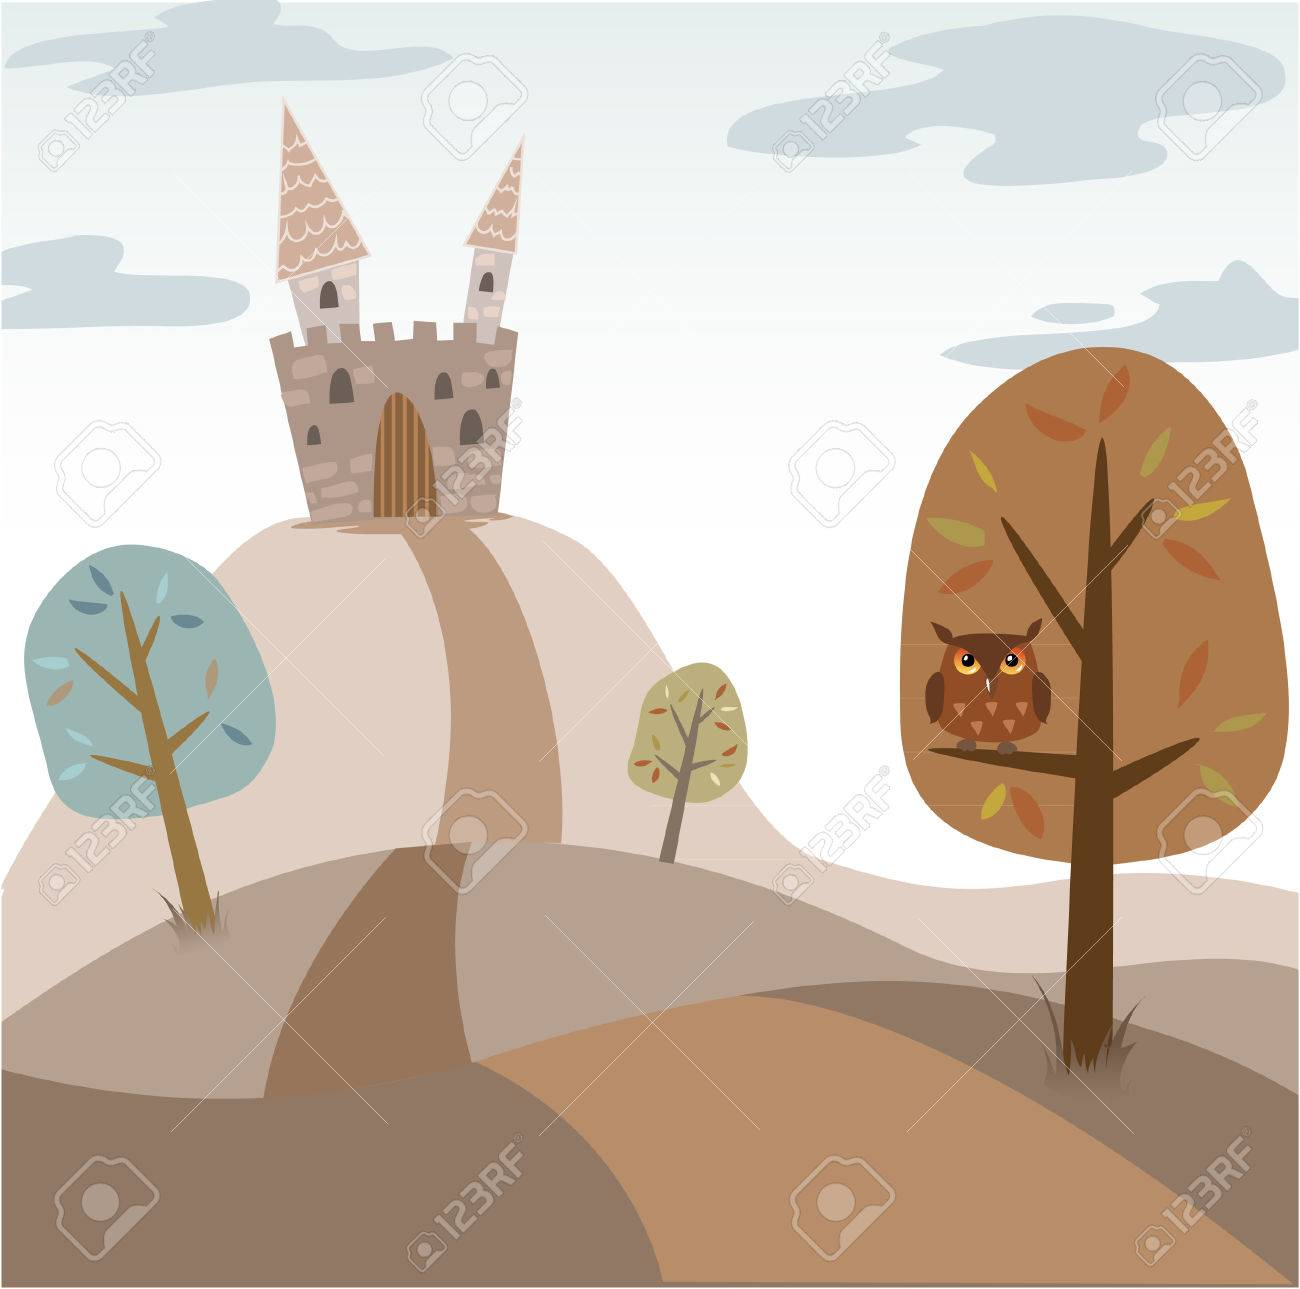 Landscape with medieval cartoon castle, trees, road and owl Stock Vector - 8399296